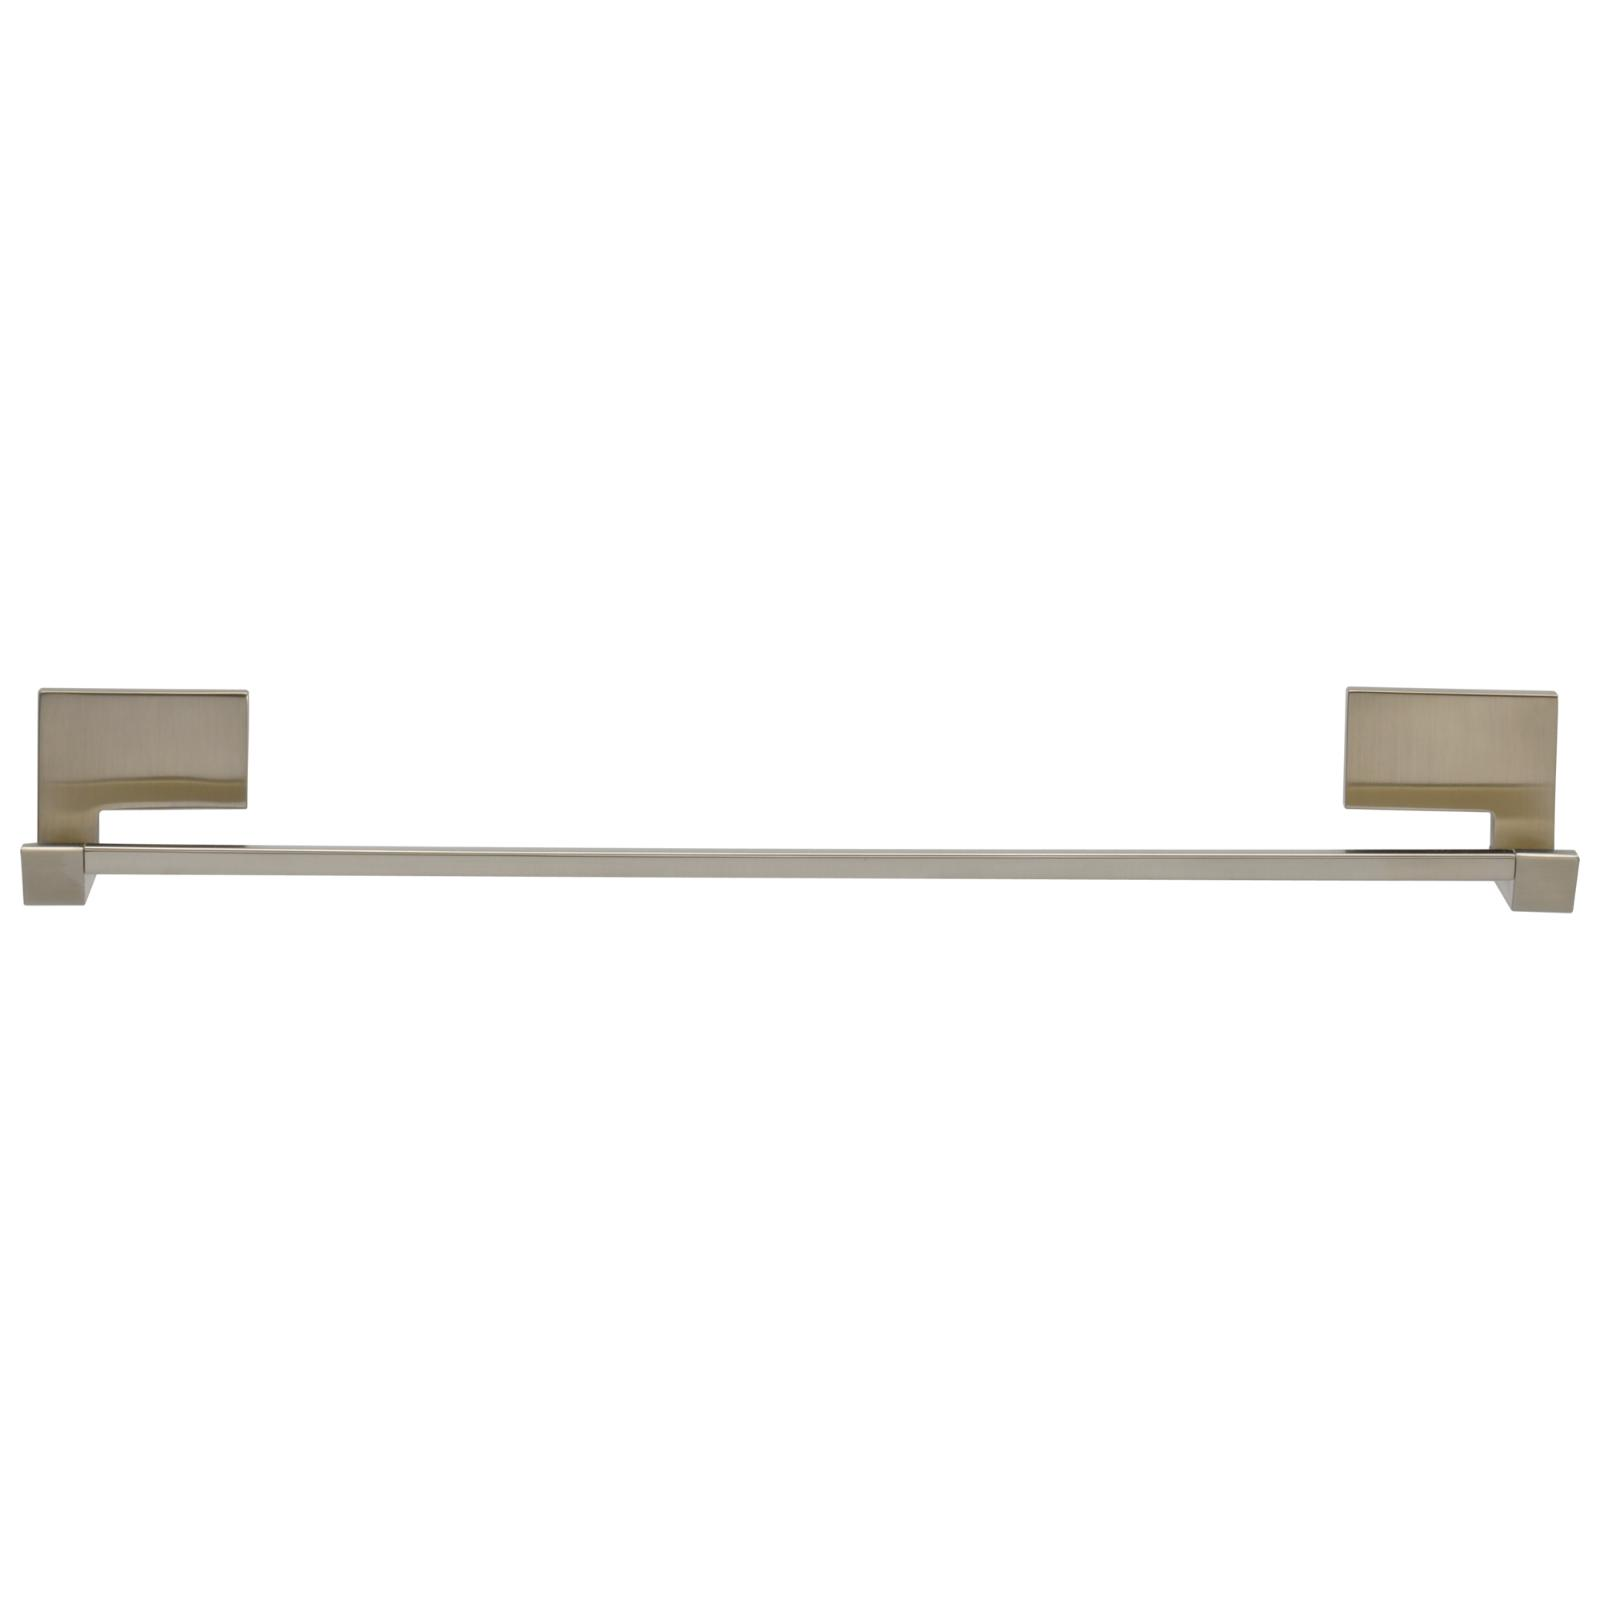 691880 bn siderna 18 towel bar brushed